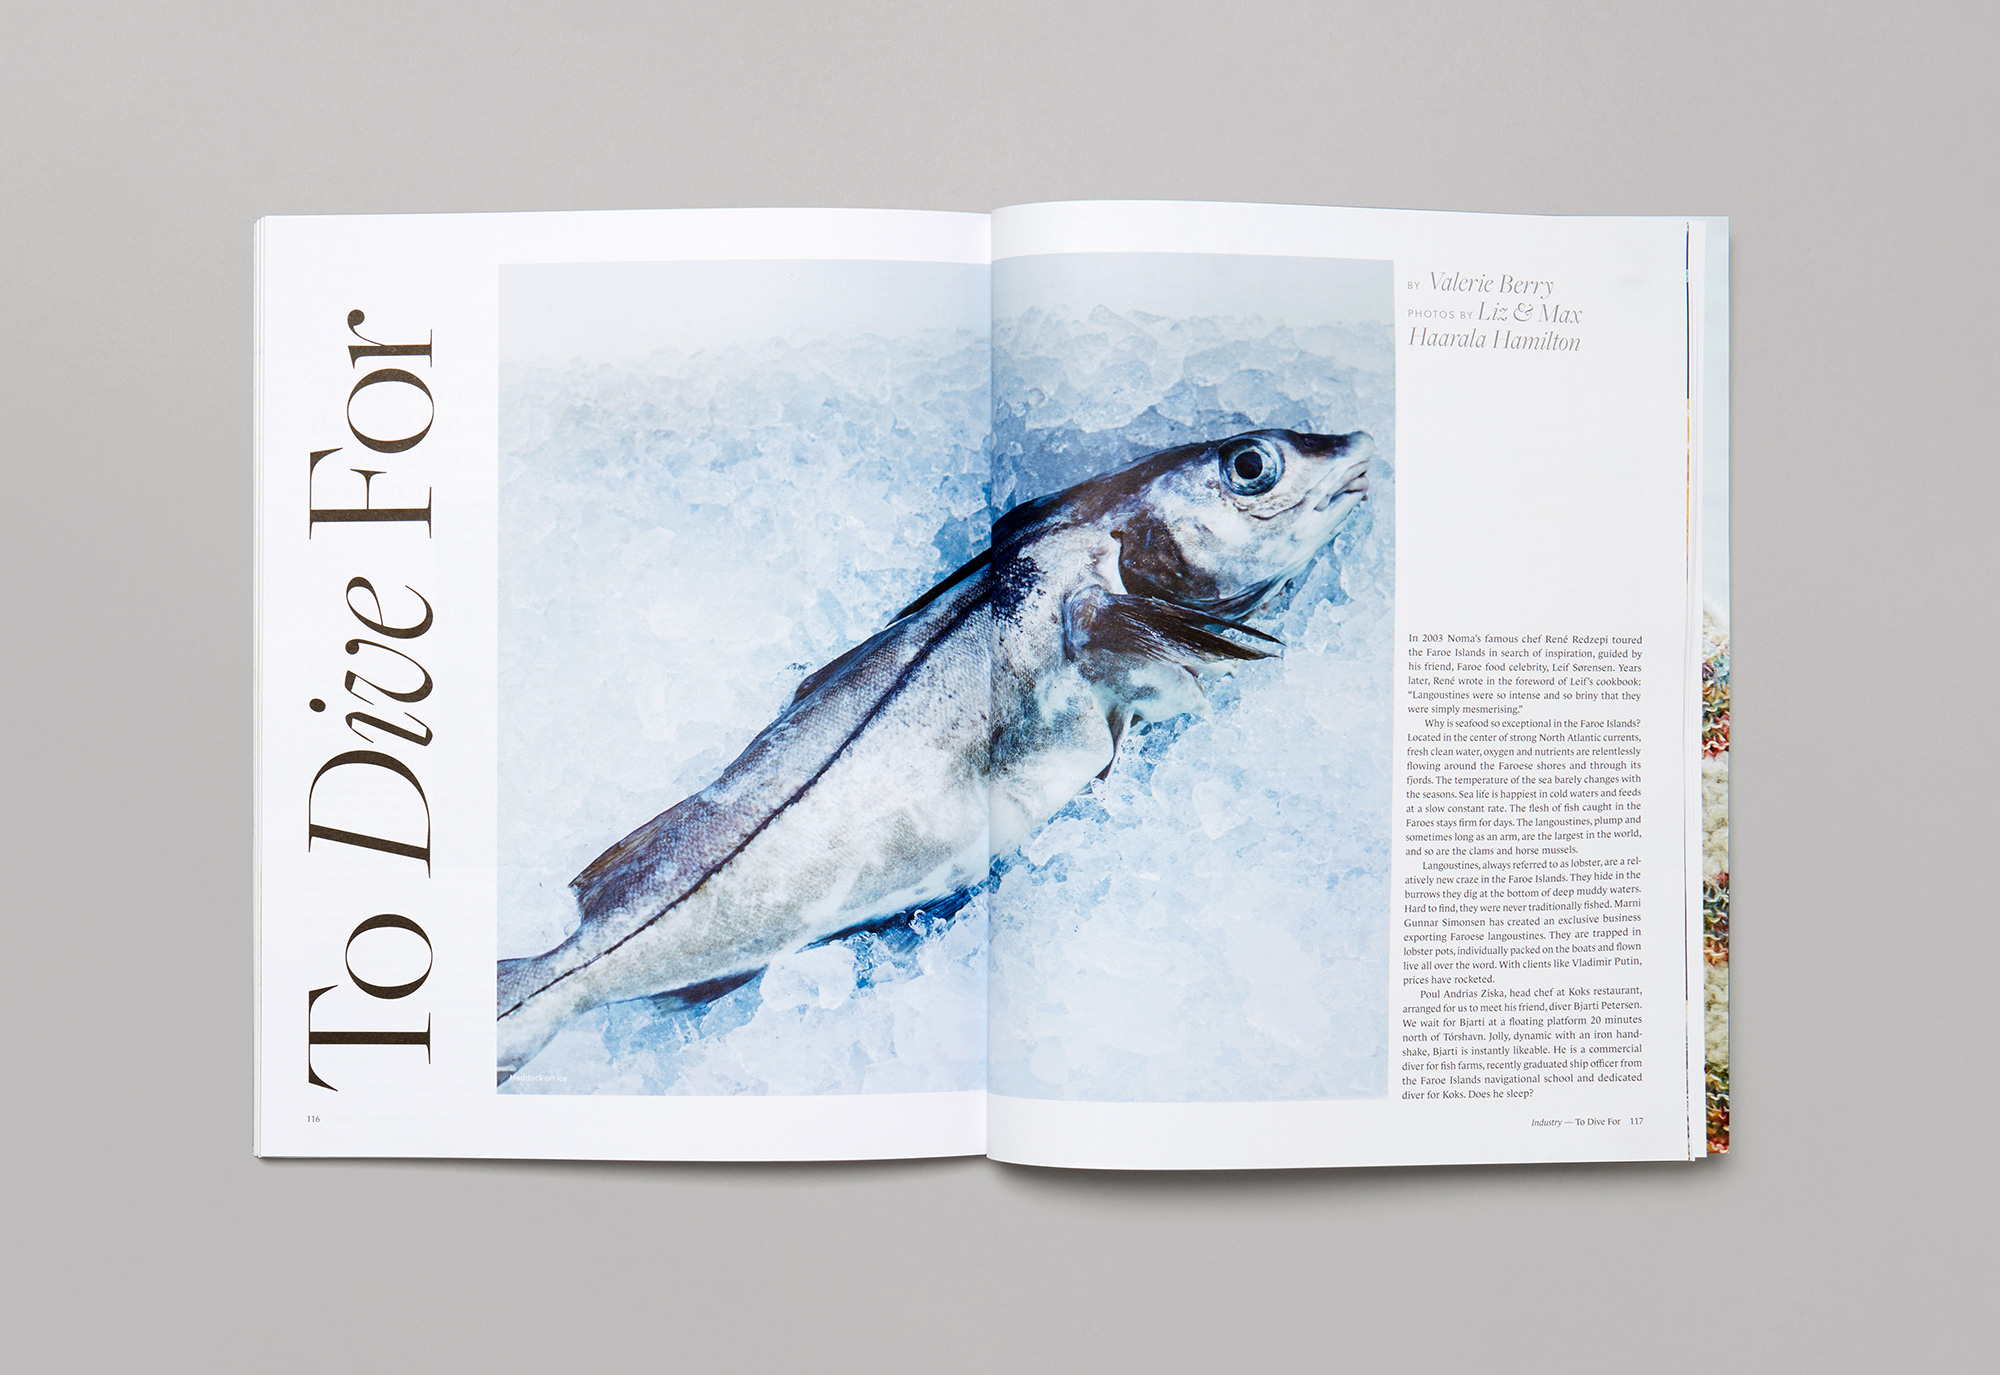 Boat Magazine designed by She Was Only